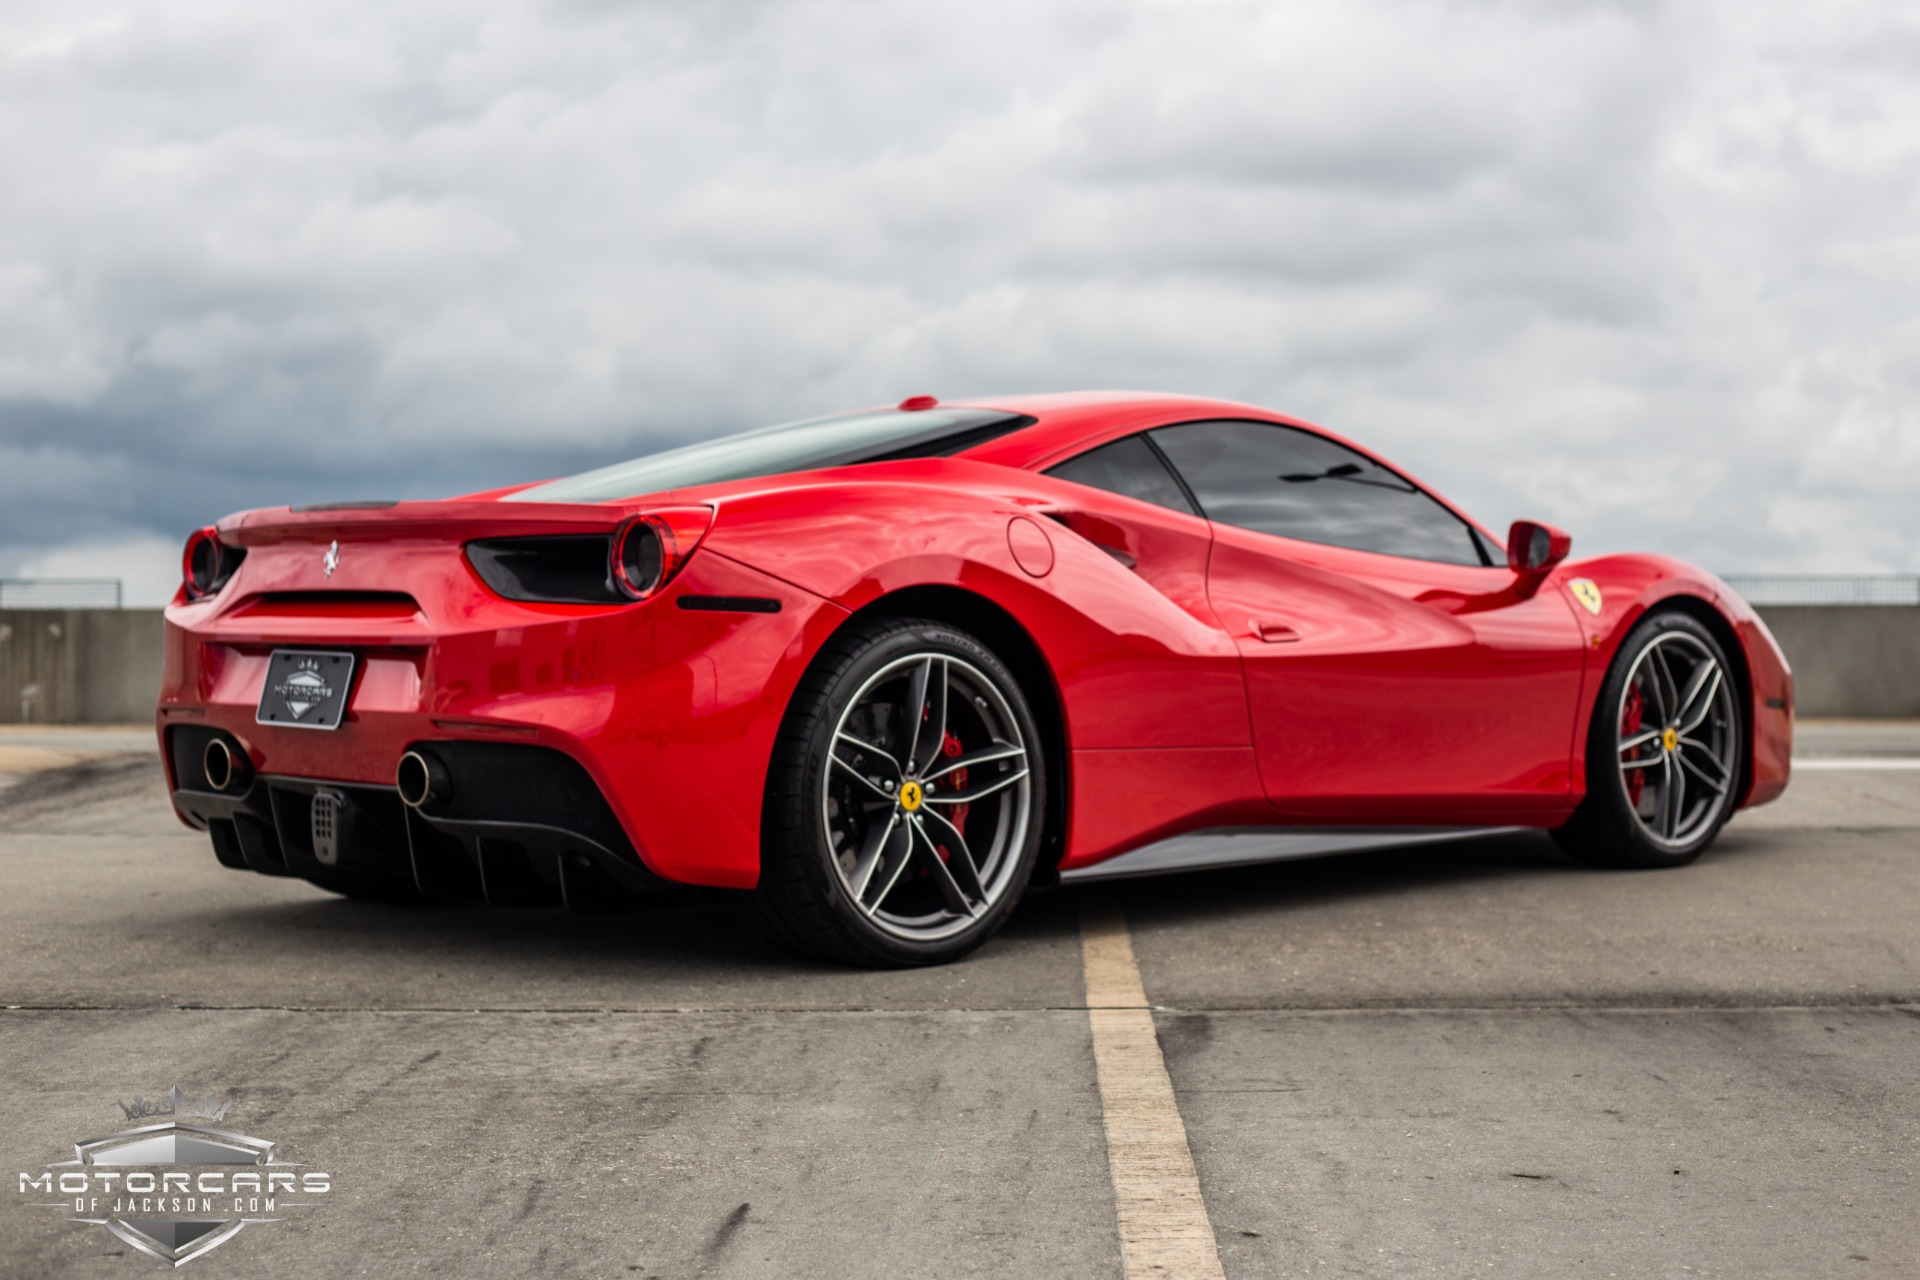 Used-2017-Ferrari-488-GTB-HUGE-MSRP-!-Tons-of-Carbon-!!-for-sale-Jackson-MS